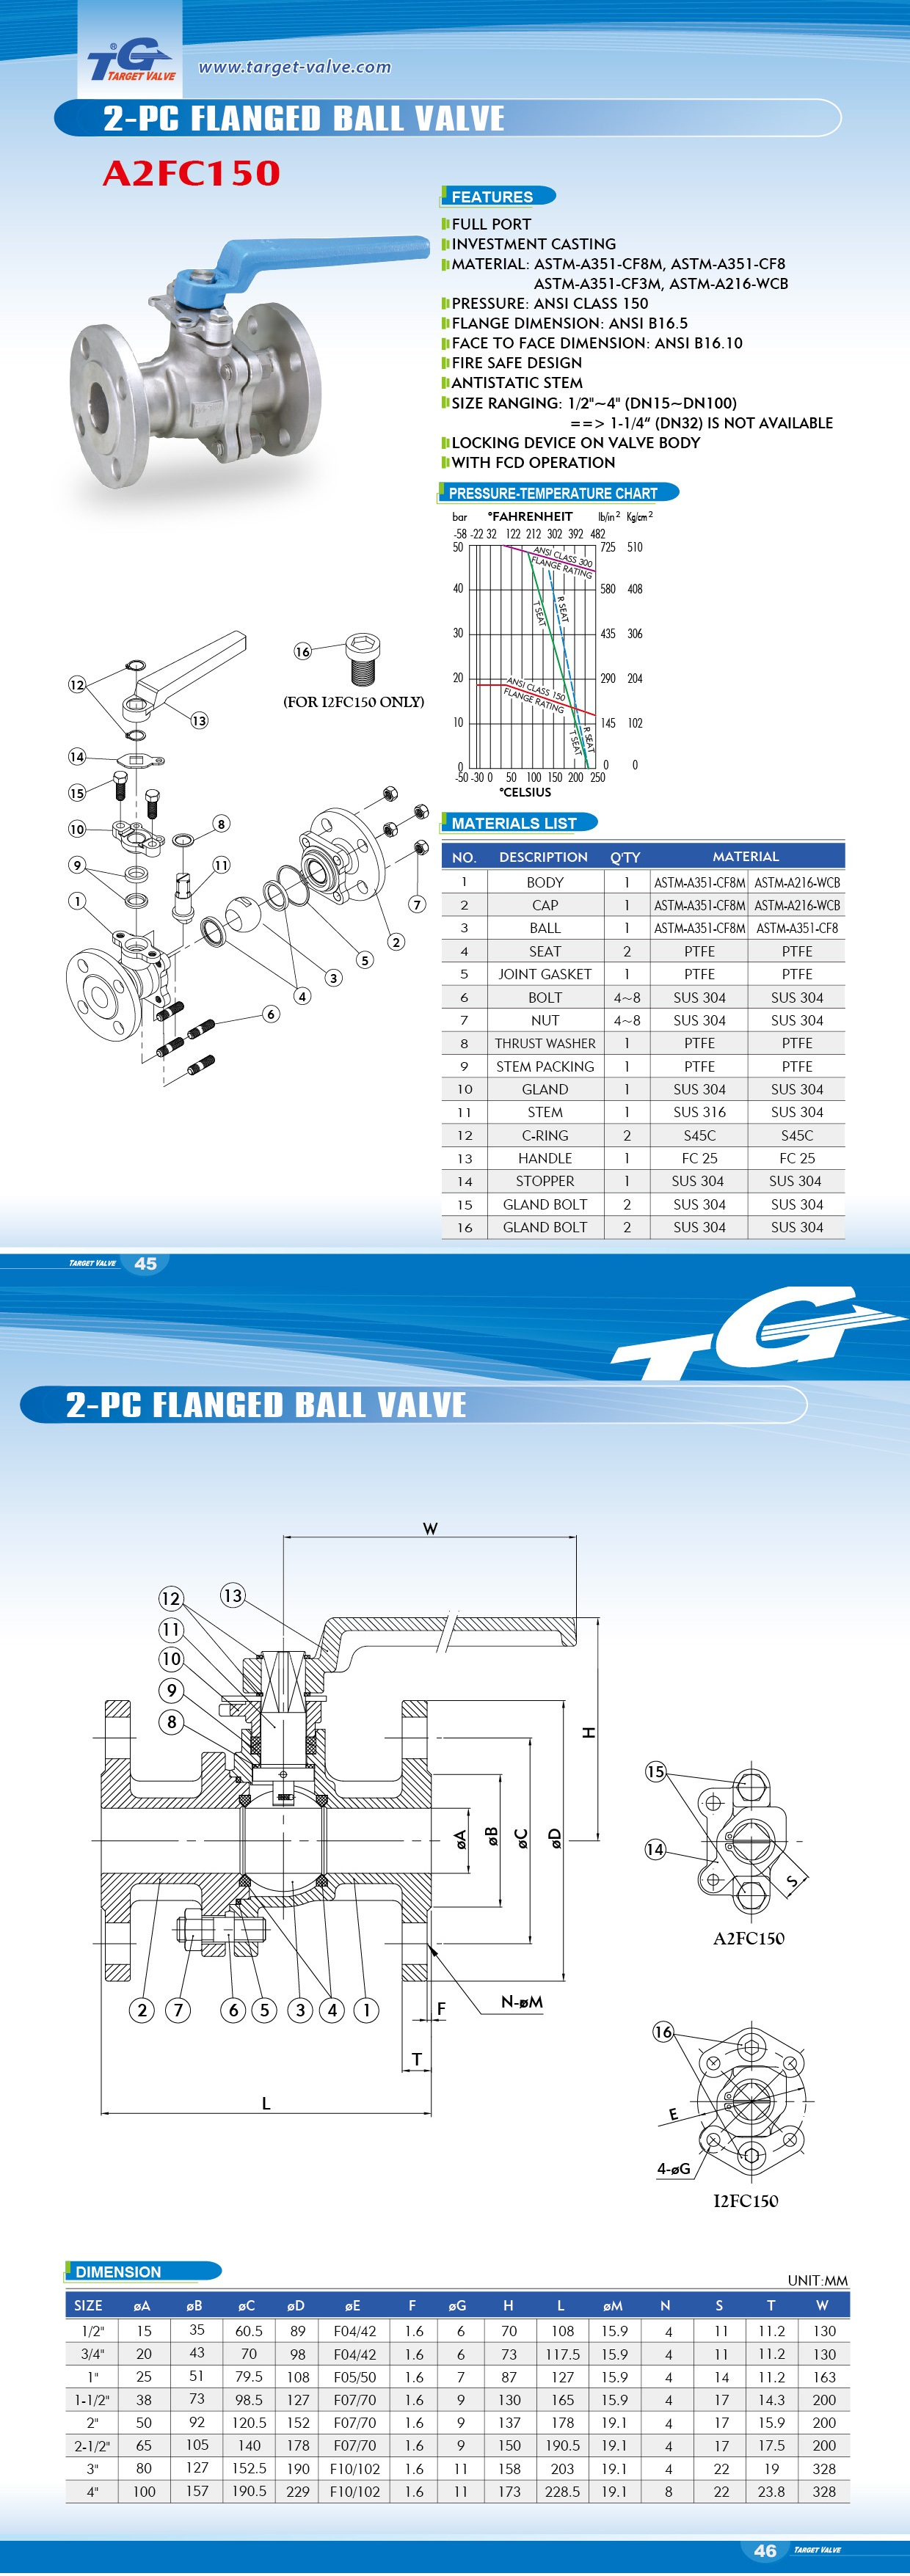 2 PC FLANGED BALL VALVE - A2FC150